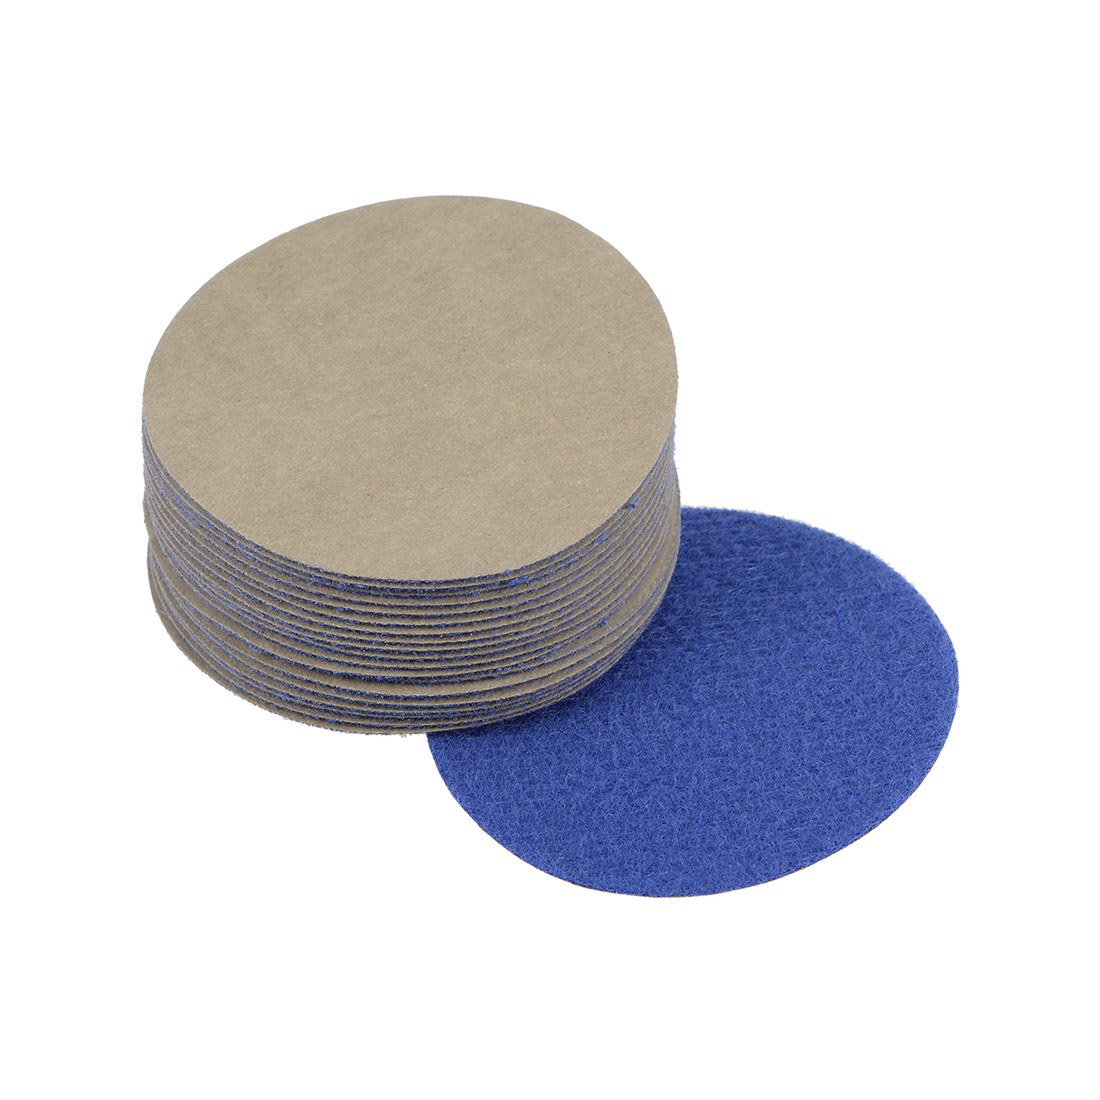 2 inch Wet Dry Discs 7000 Grit Hook and Loop Sanding Disc Silicon Carbide 20pcs